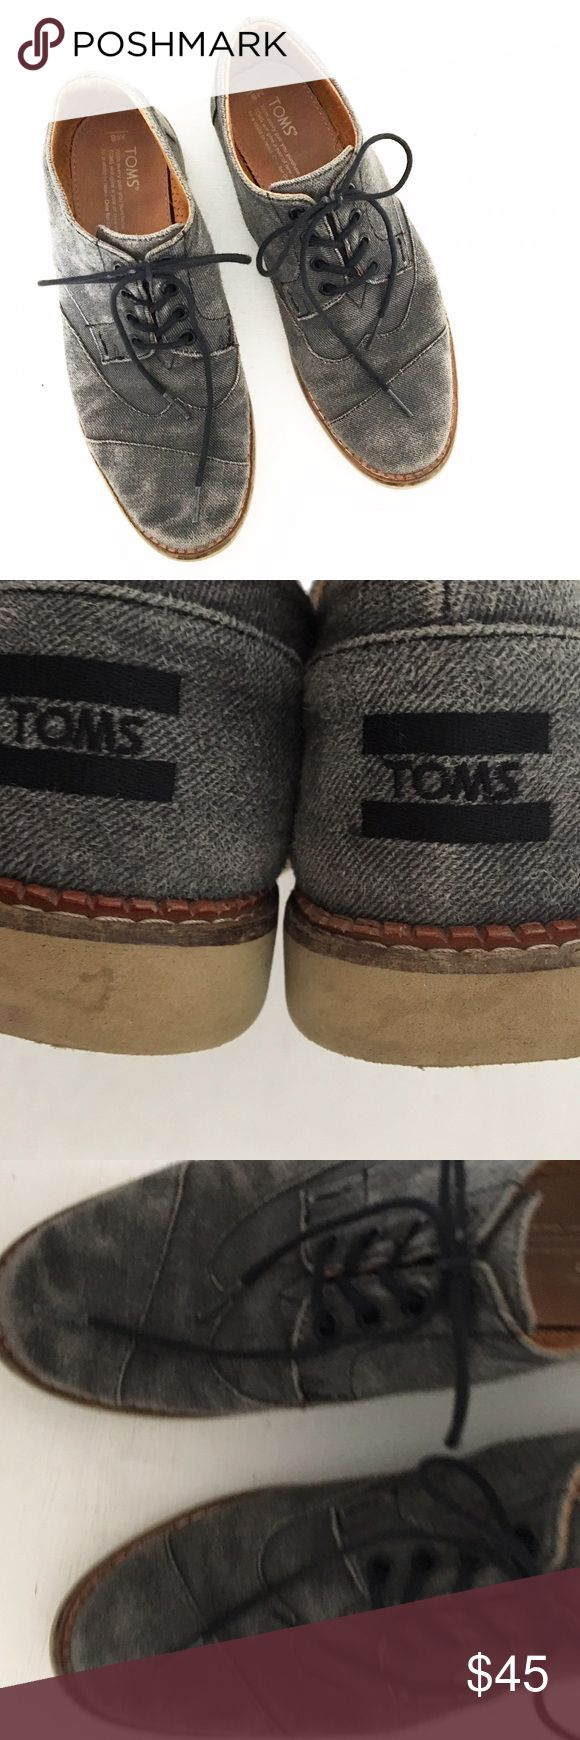 Men's TOMS Brouge Gray-Black Lace Up Shoes Gently pre-loved with no rips or stains. Please see all pictures for an accurate description of condition. Sz 8. *0505170225* TOMS Shoes Oxfords & Derbys